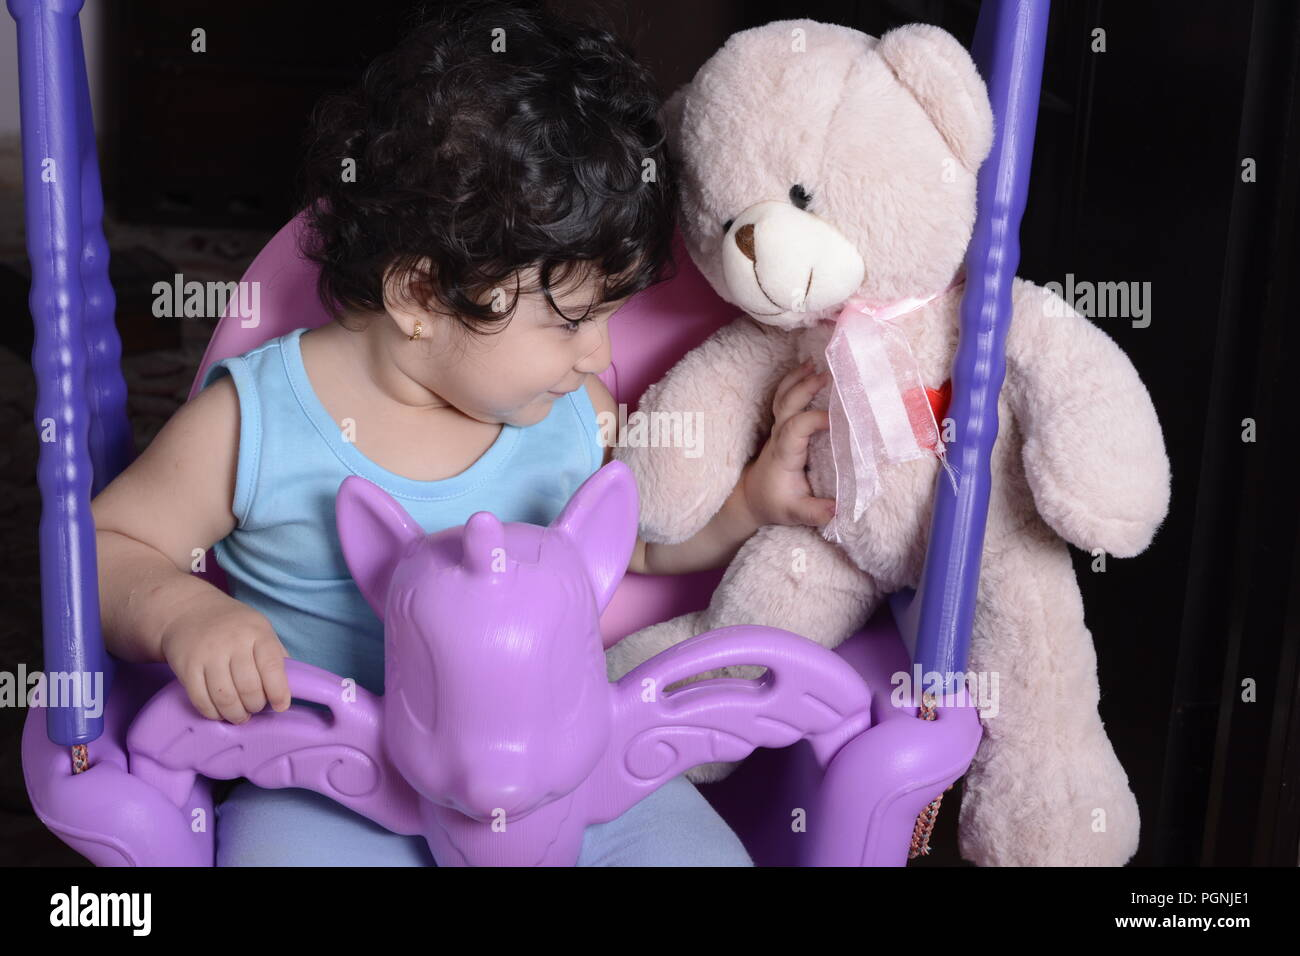 Portrait of a little baby girl on unicorn swing with jealousy act to teddy bear doll - Stock Image